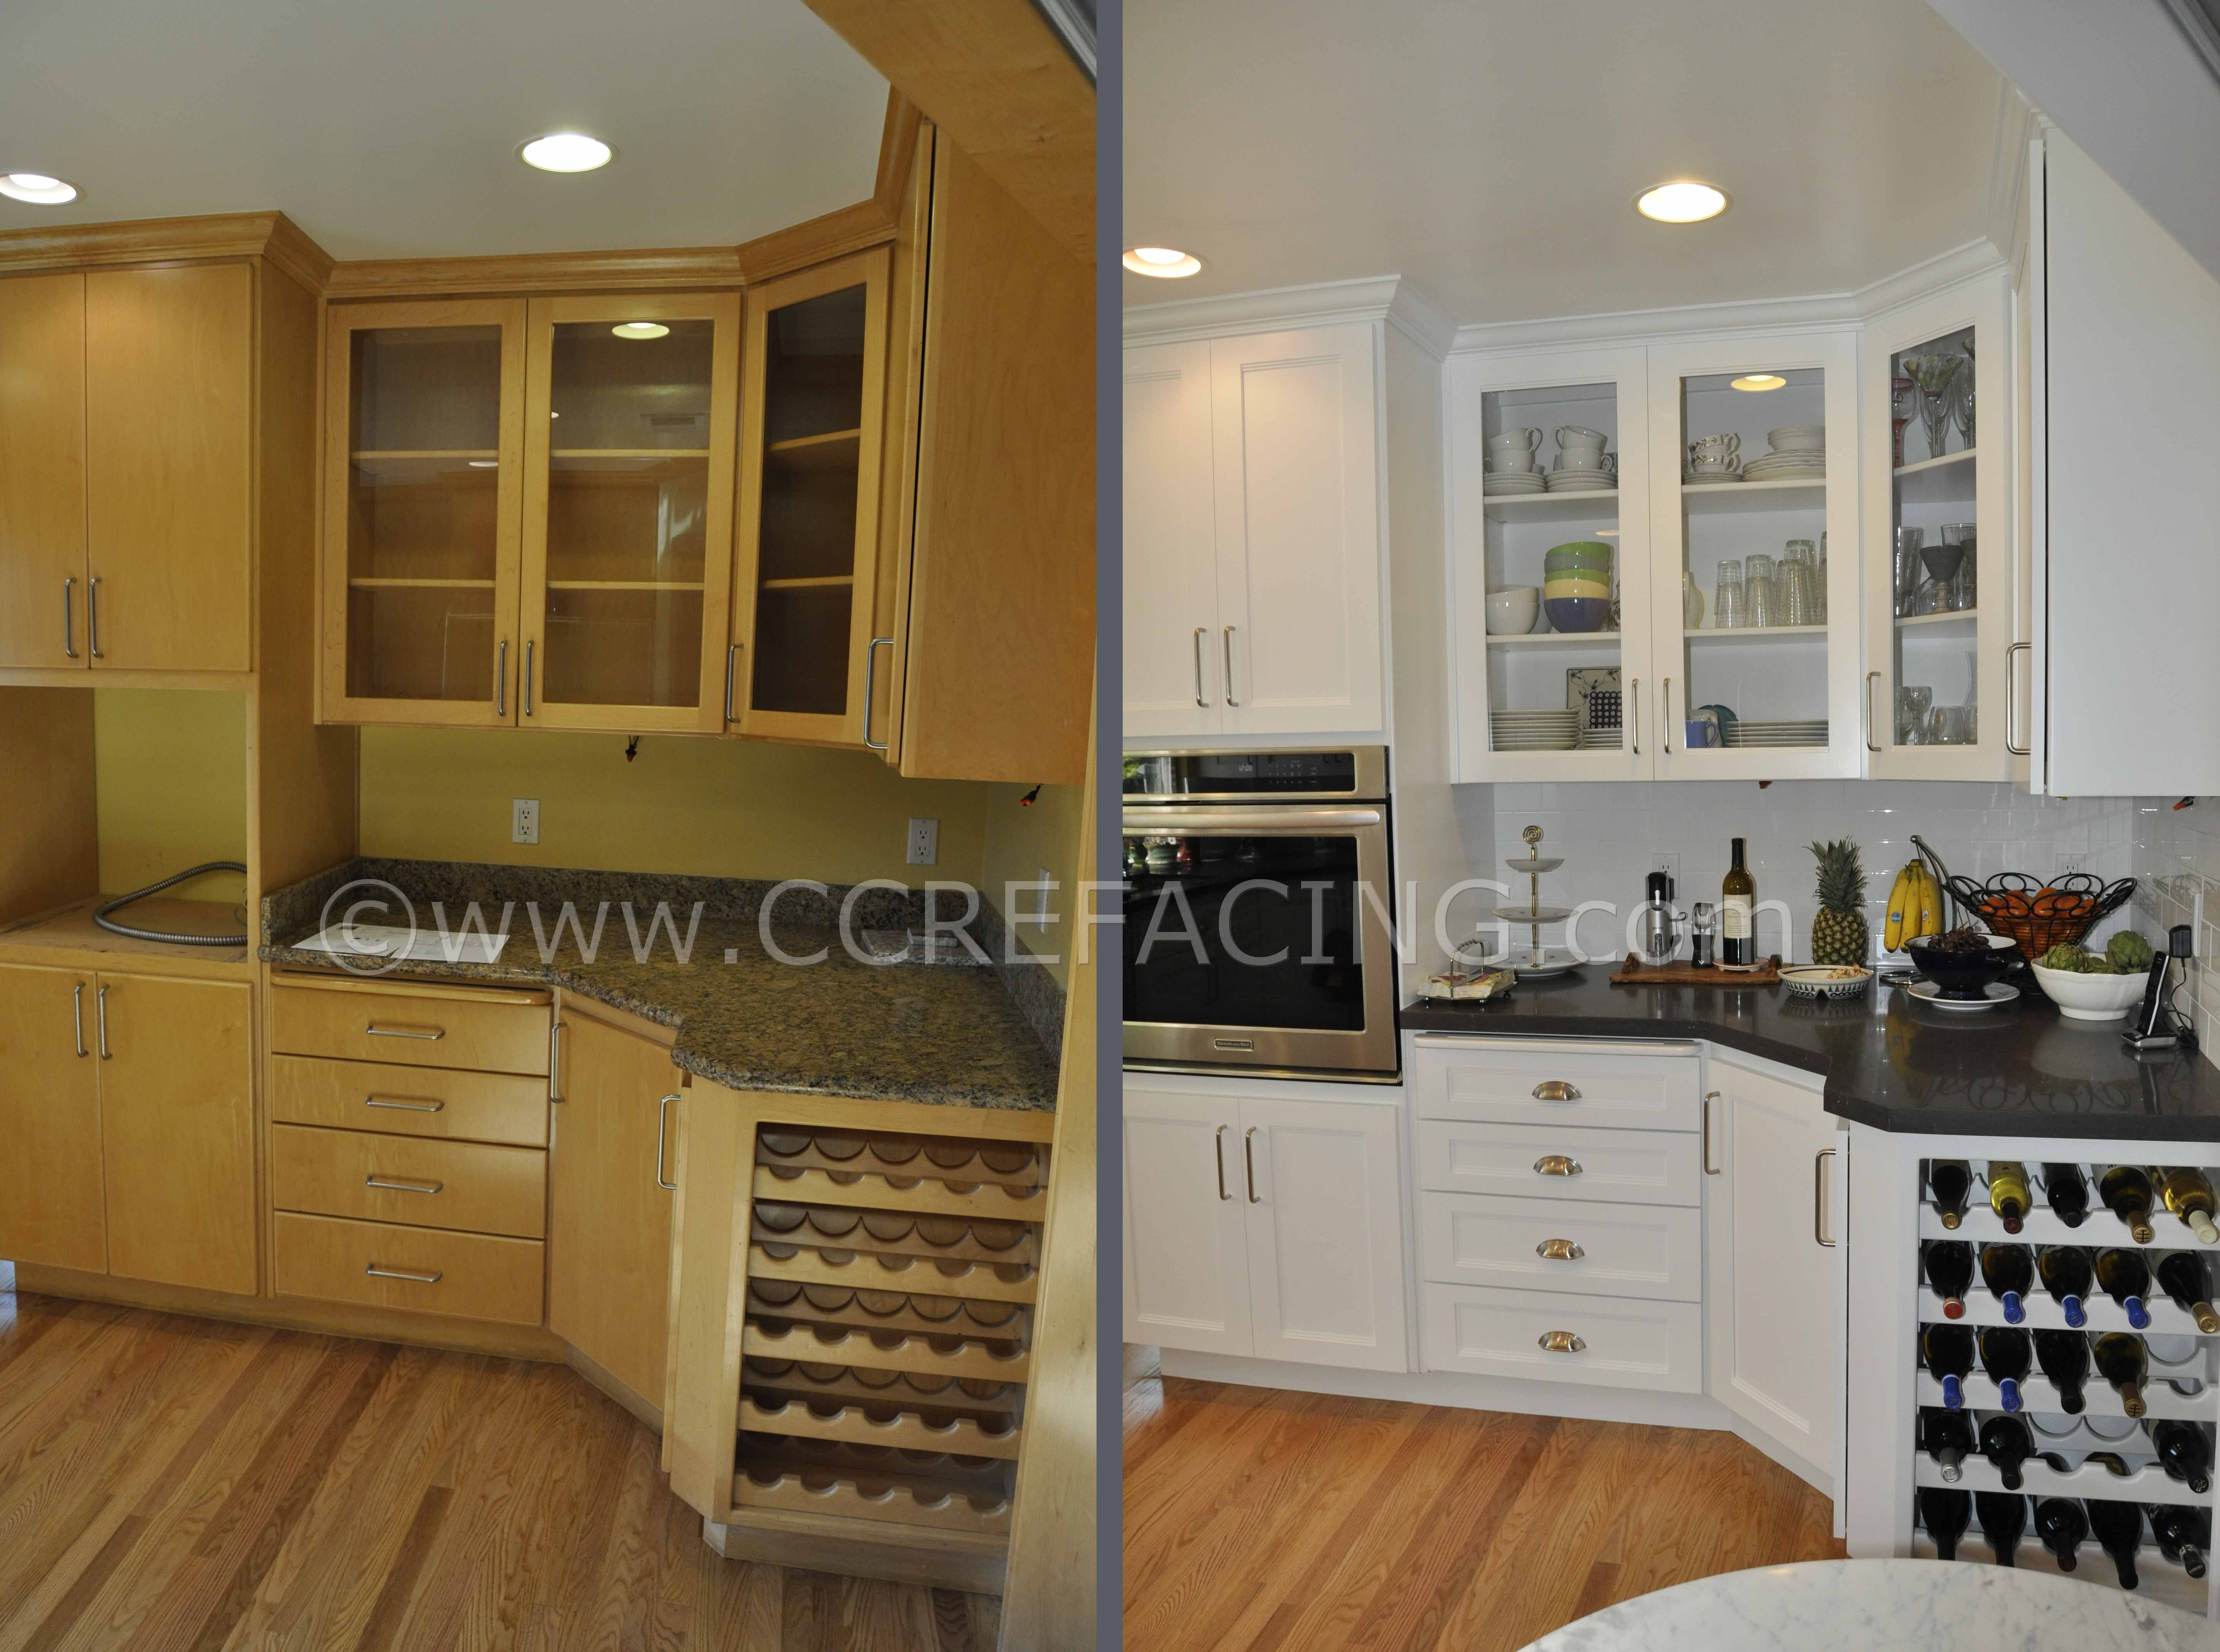 Lovely Refacing Cabinets Shaker Style